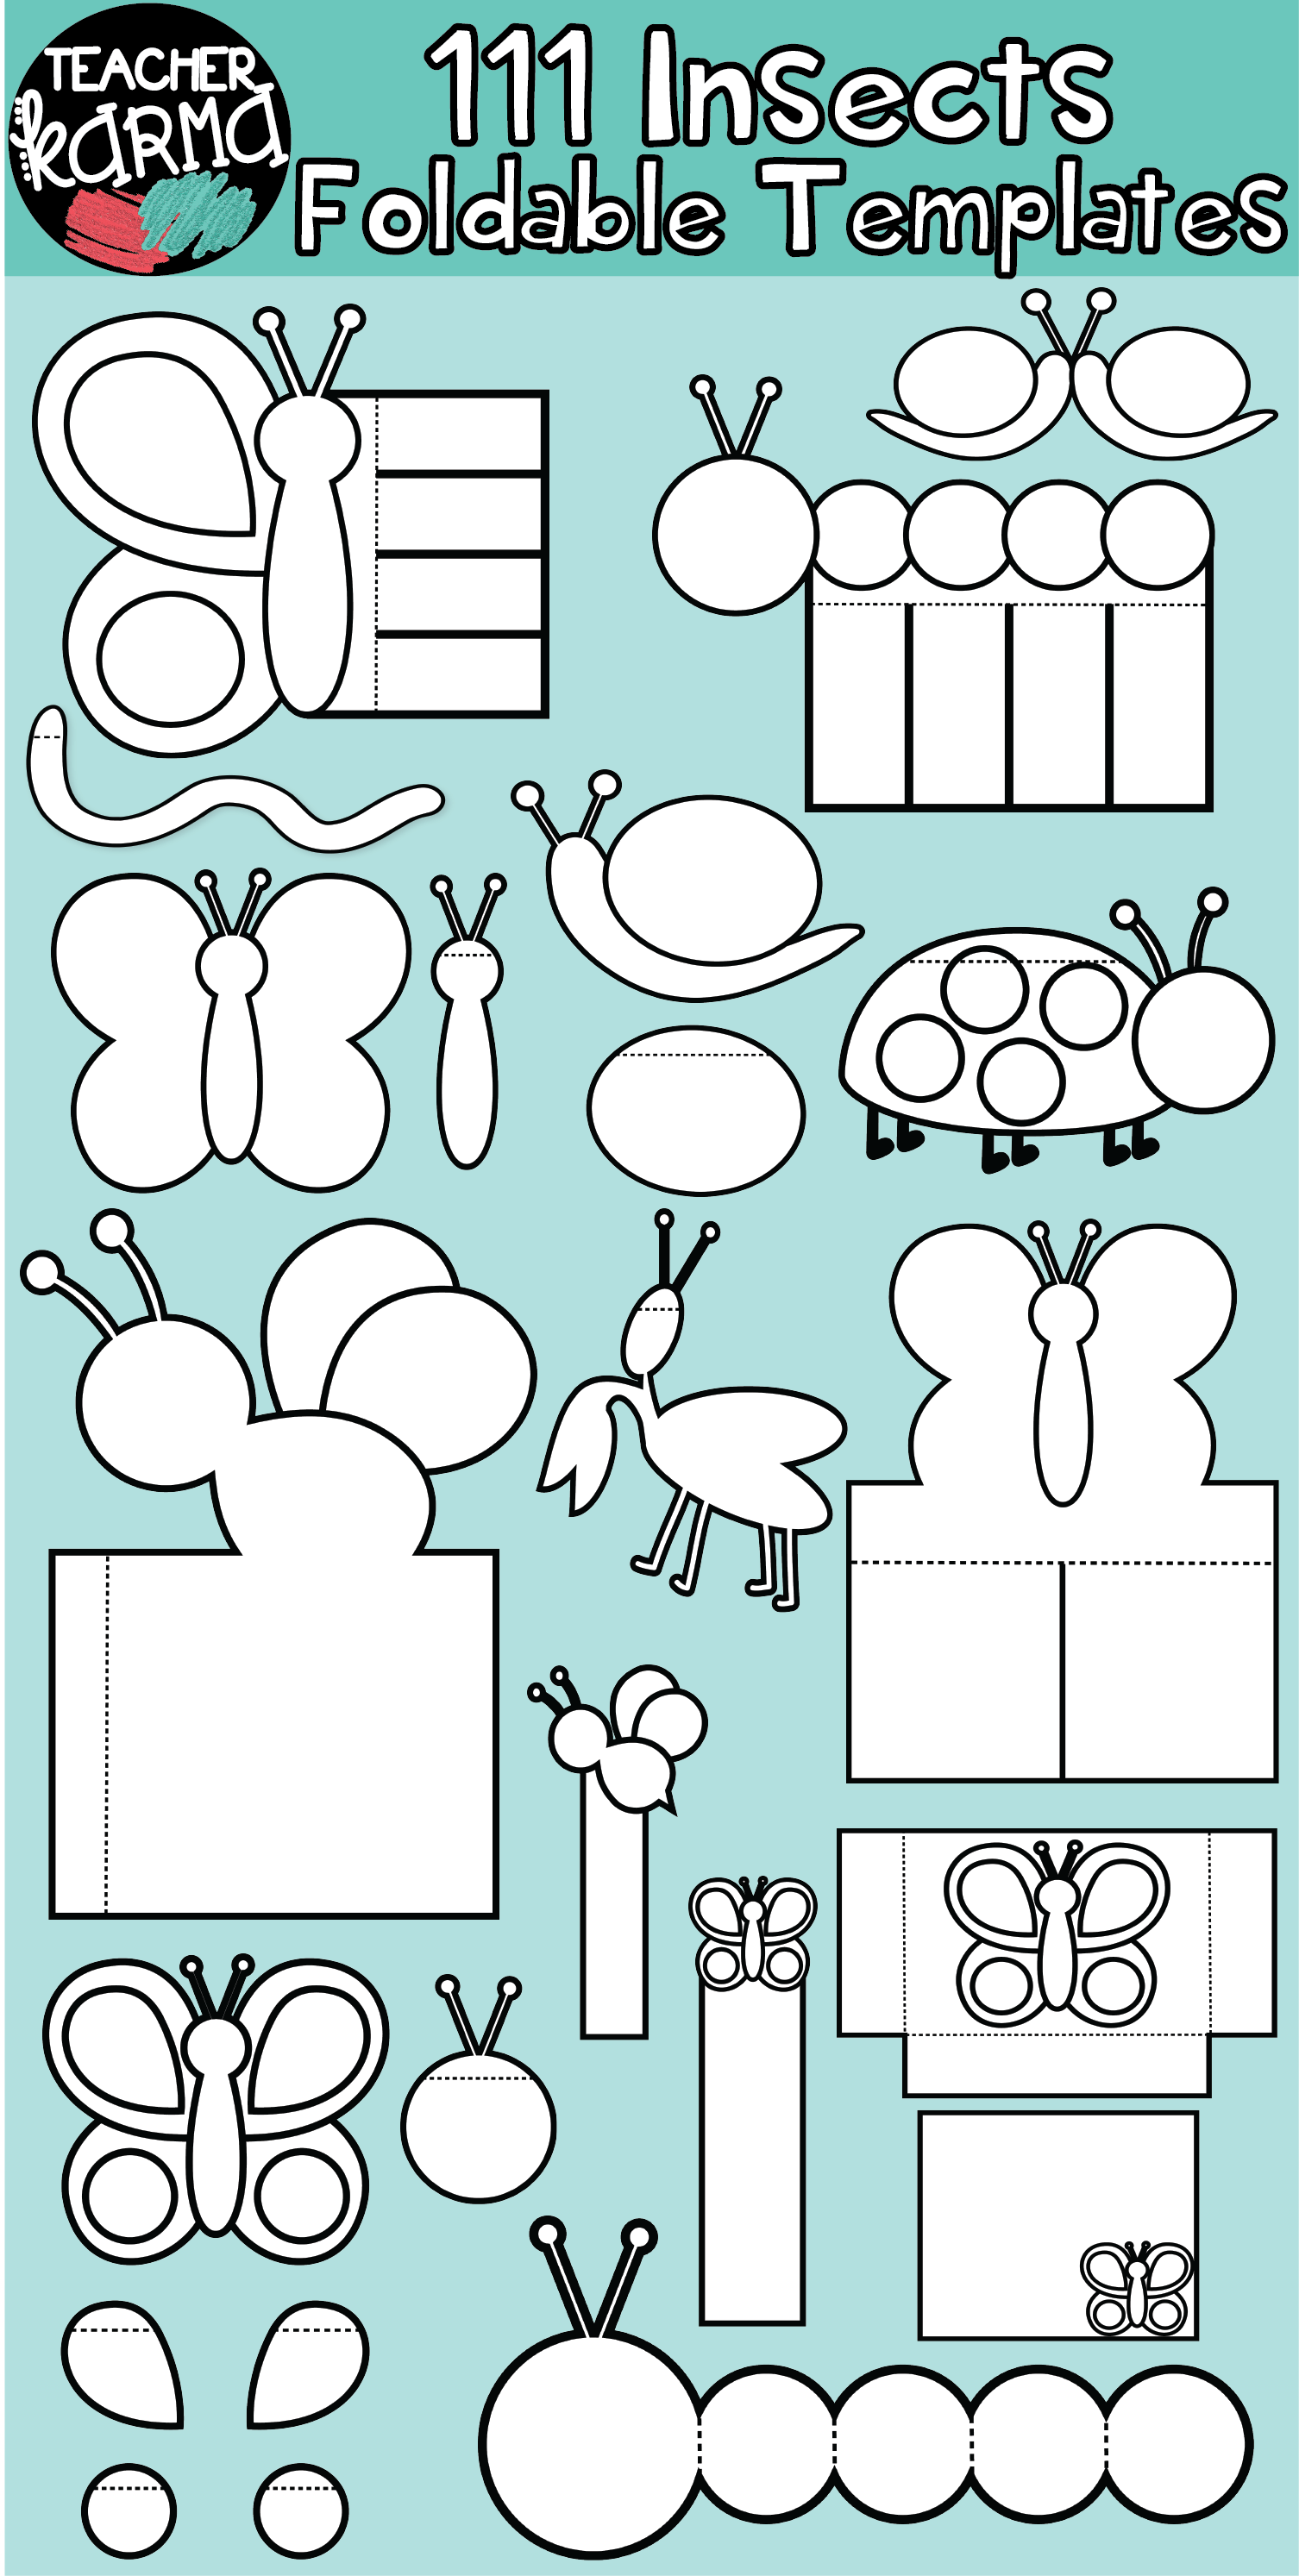 Insects Bugs 111 Foldables Interactives Flip Book